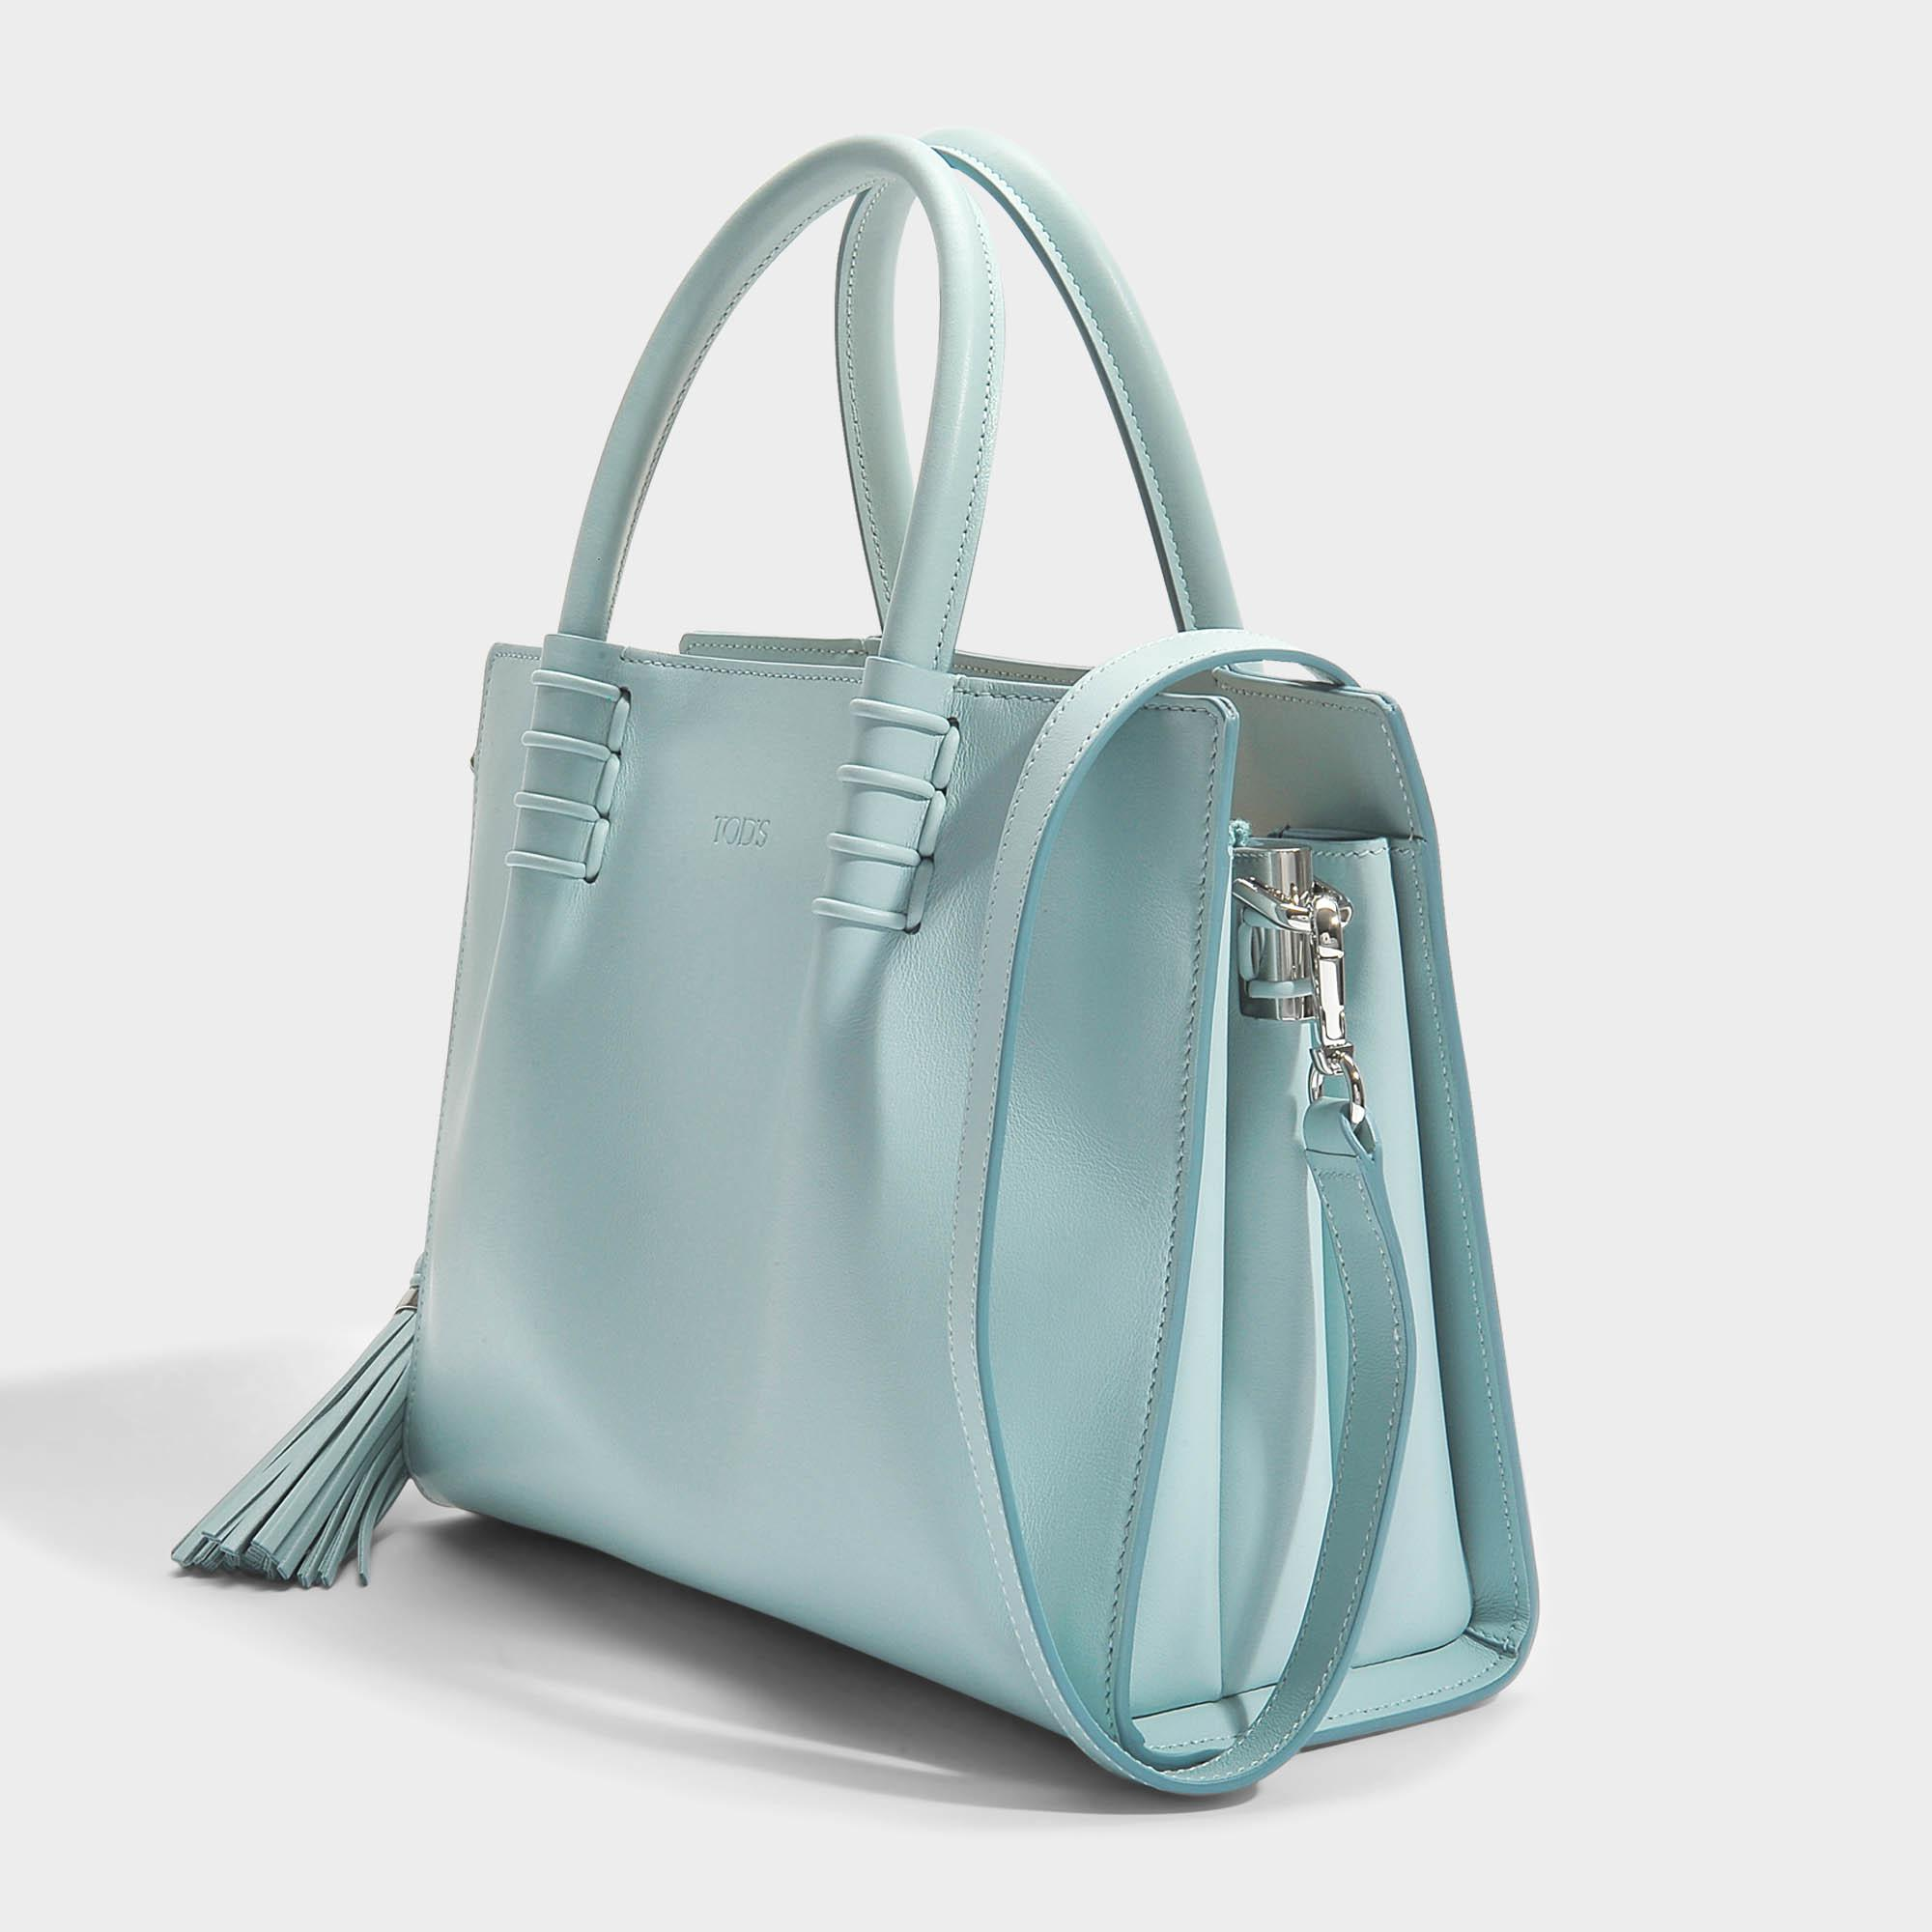 Moc Shopping Small Lady Calfskin In Blue Tods Bag 1nzxbw7xv At